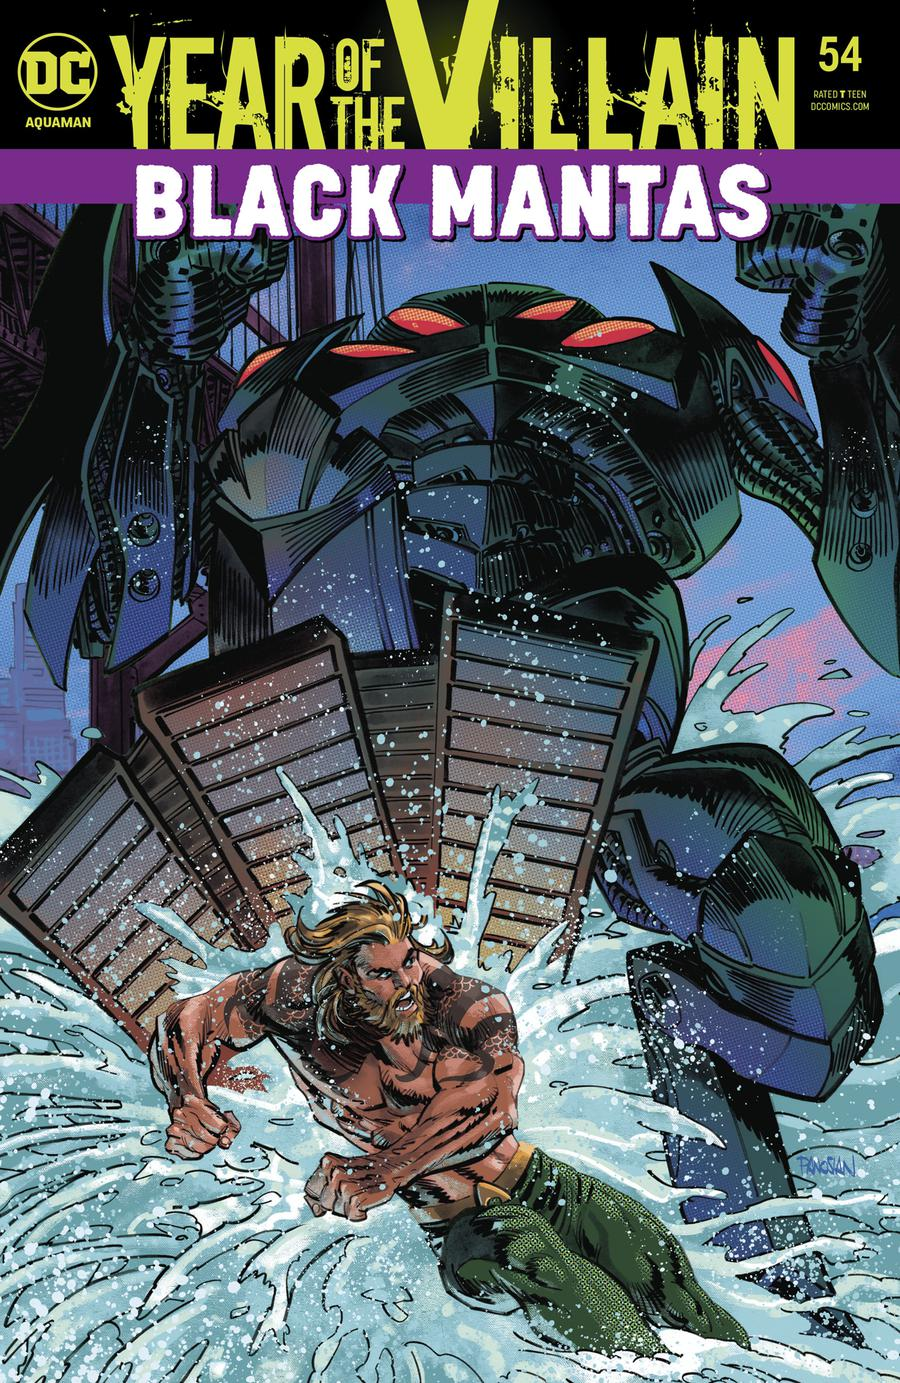 Aquaman Vol 6 #54 Cover A Regular Dan Panosian Acetate Cover (Year Of The Villain Hostile Takeover Tie-In)